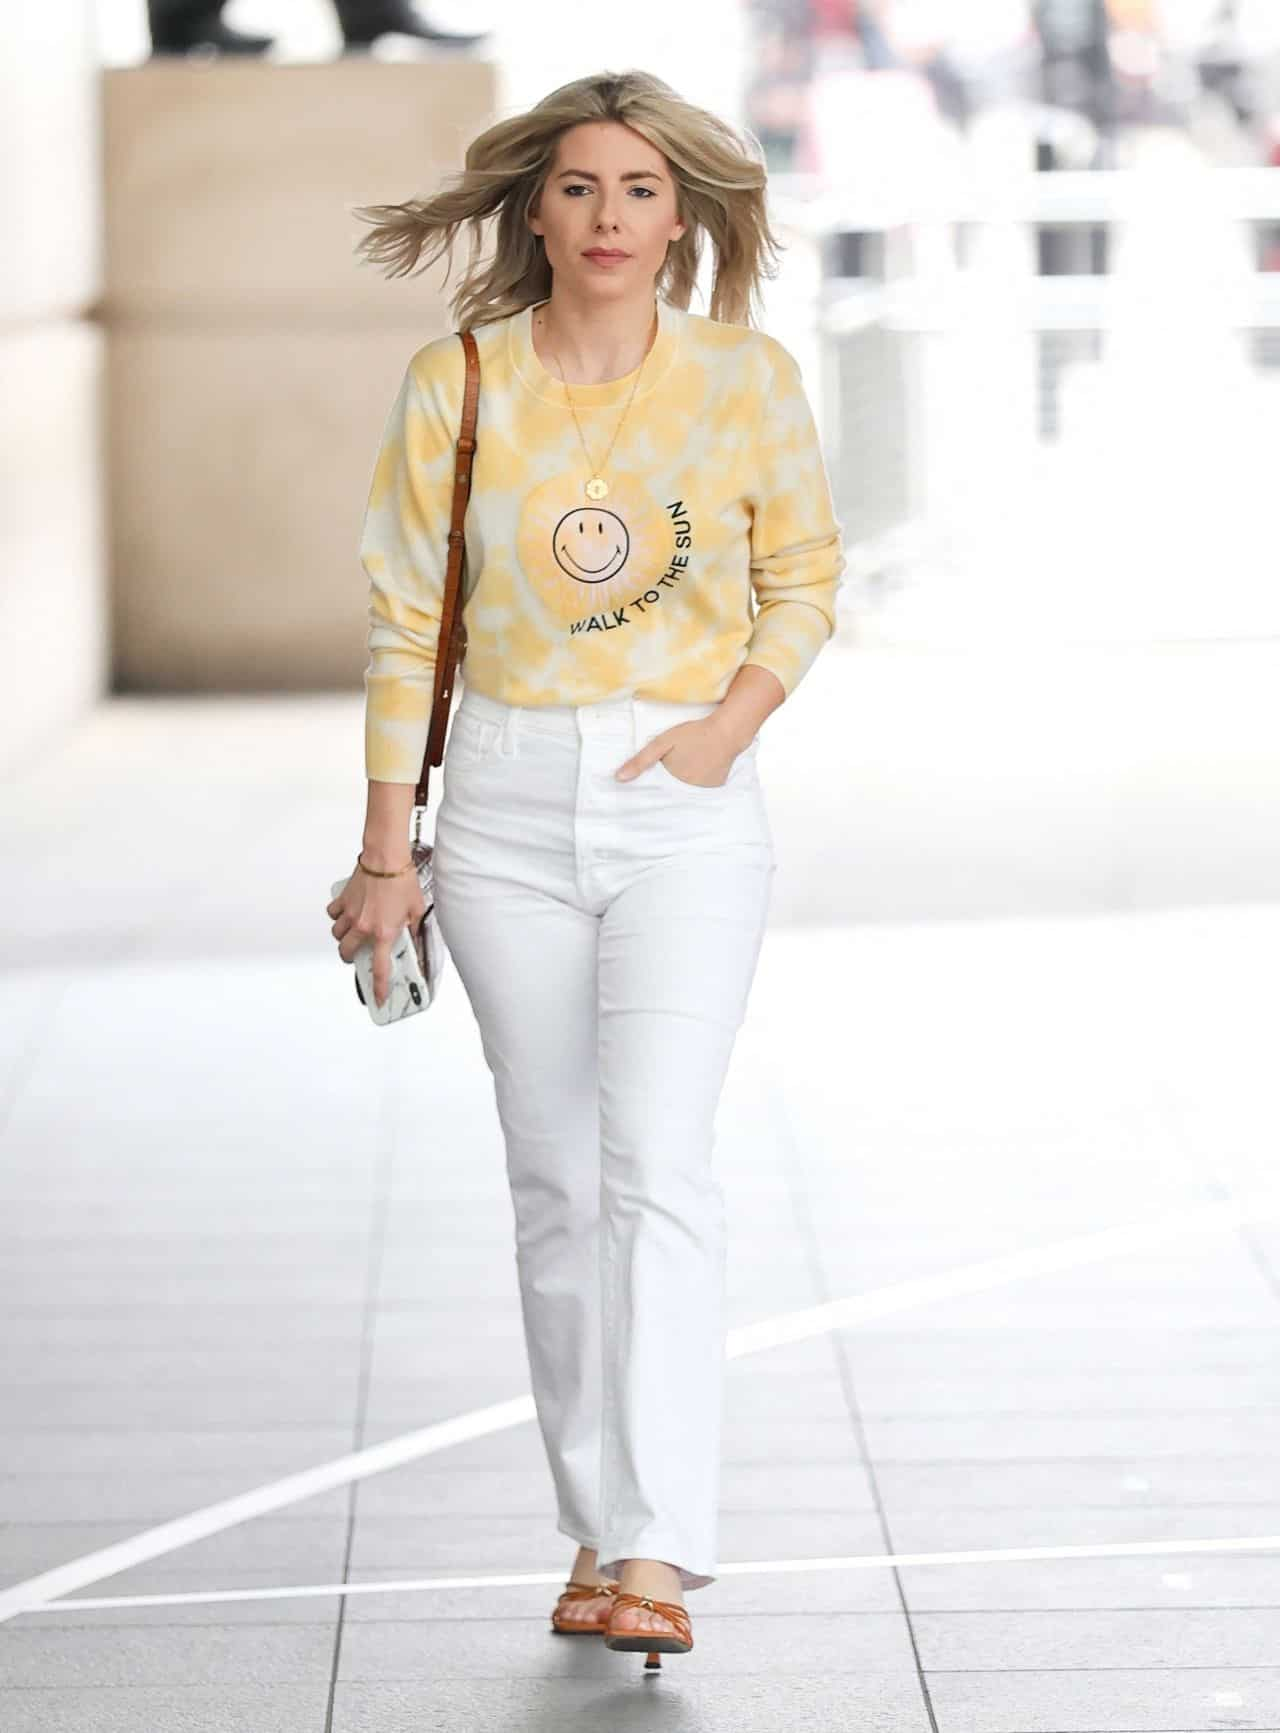 Mollie King Wears Yellow Sweater and White Jeans on her Way to BBC Radio 1